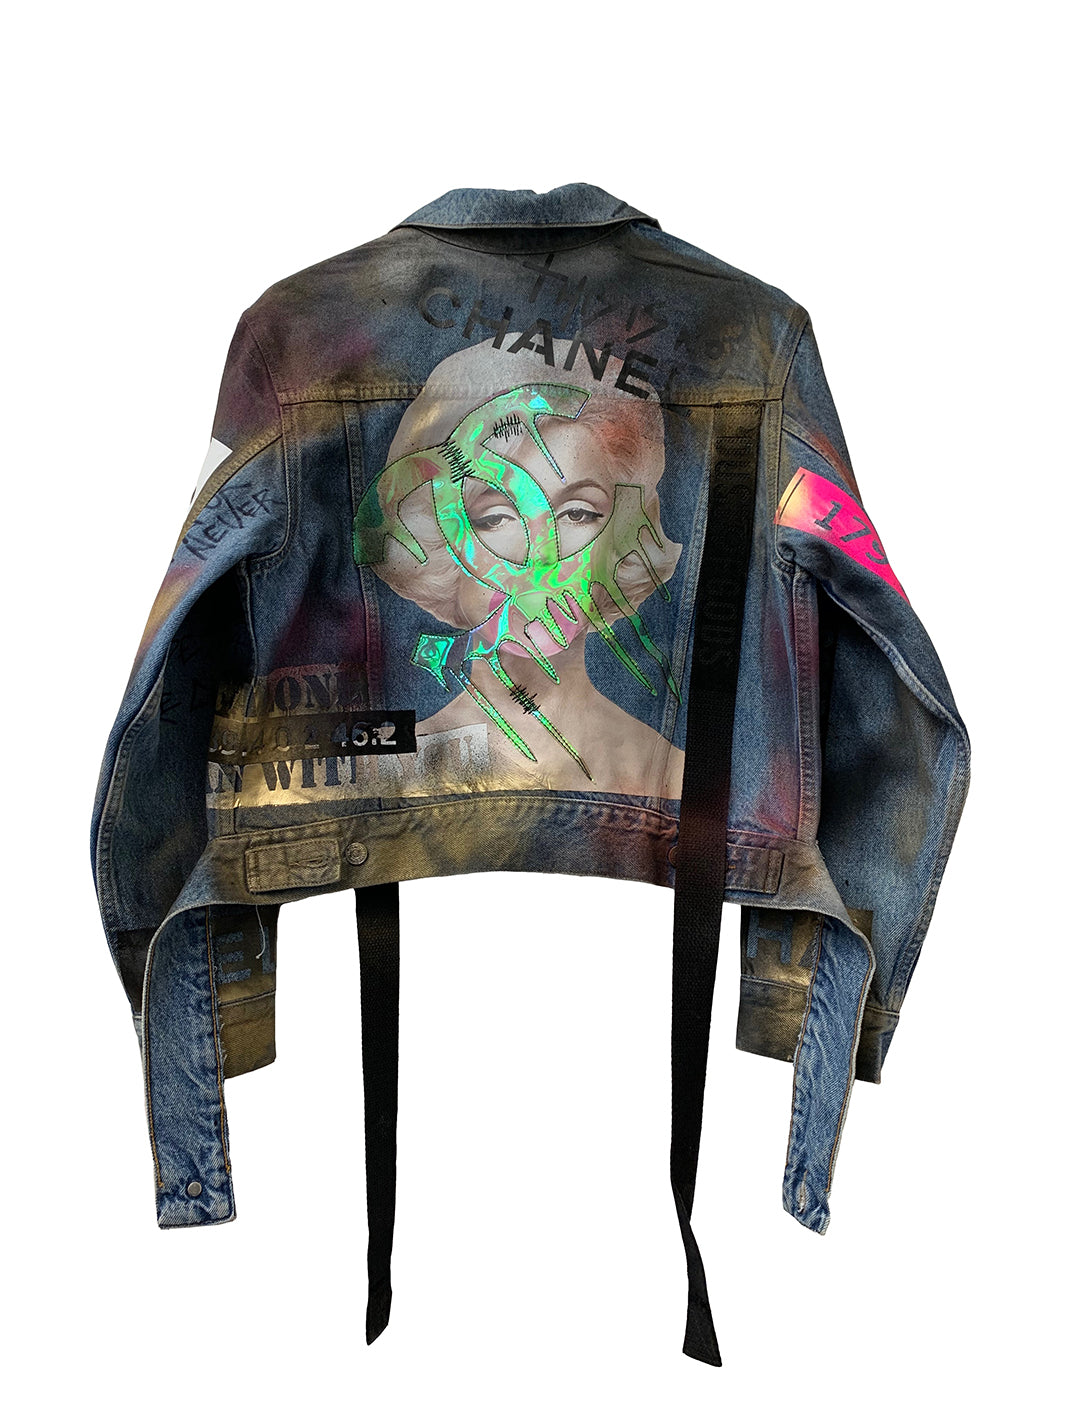 This is not Chanel Marilyn denim jacket